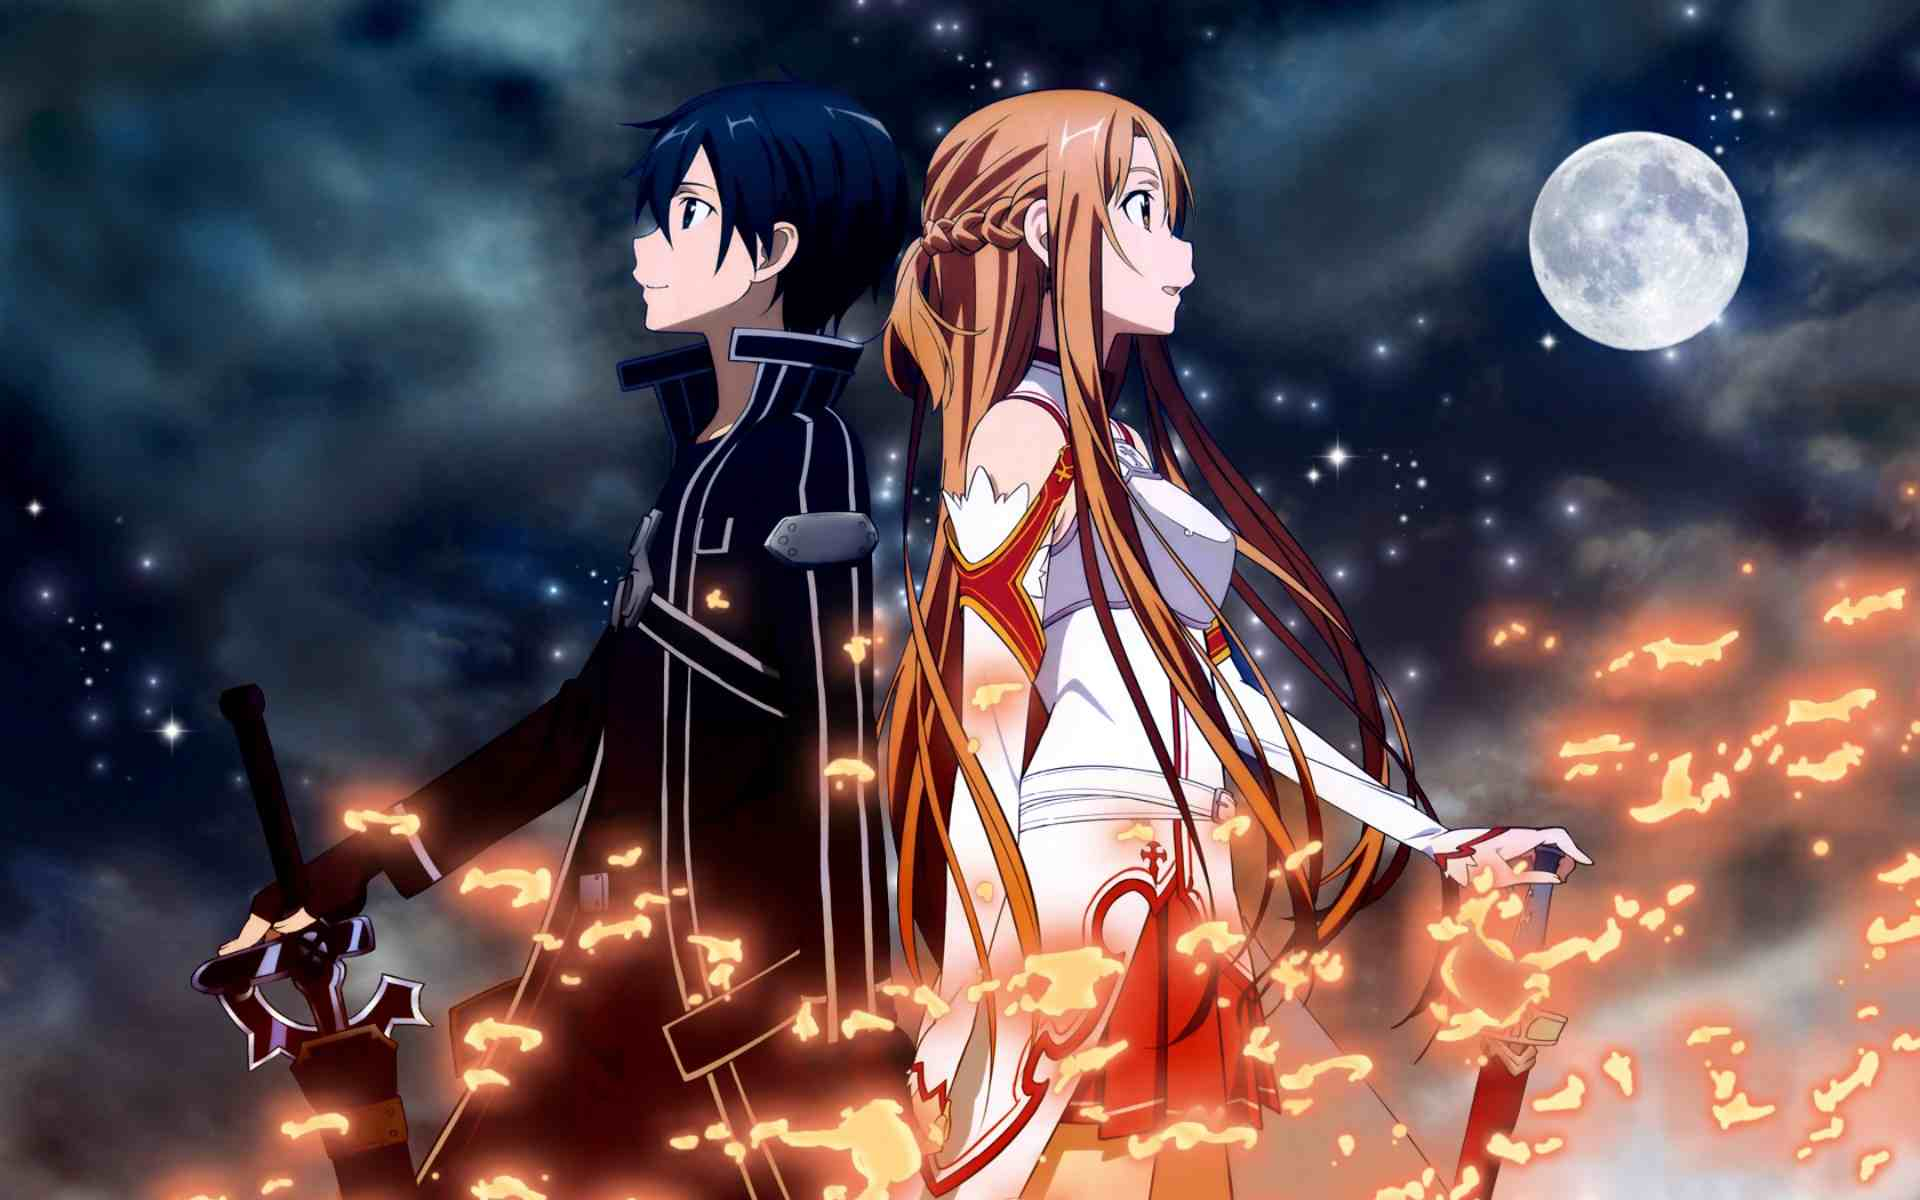 Sword Art Online Sucks - Here's Why